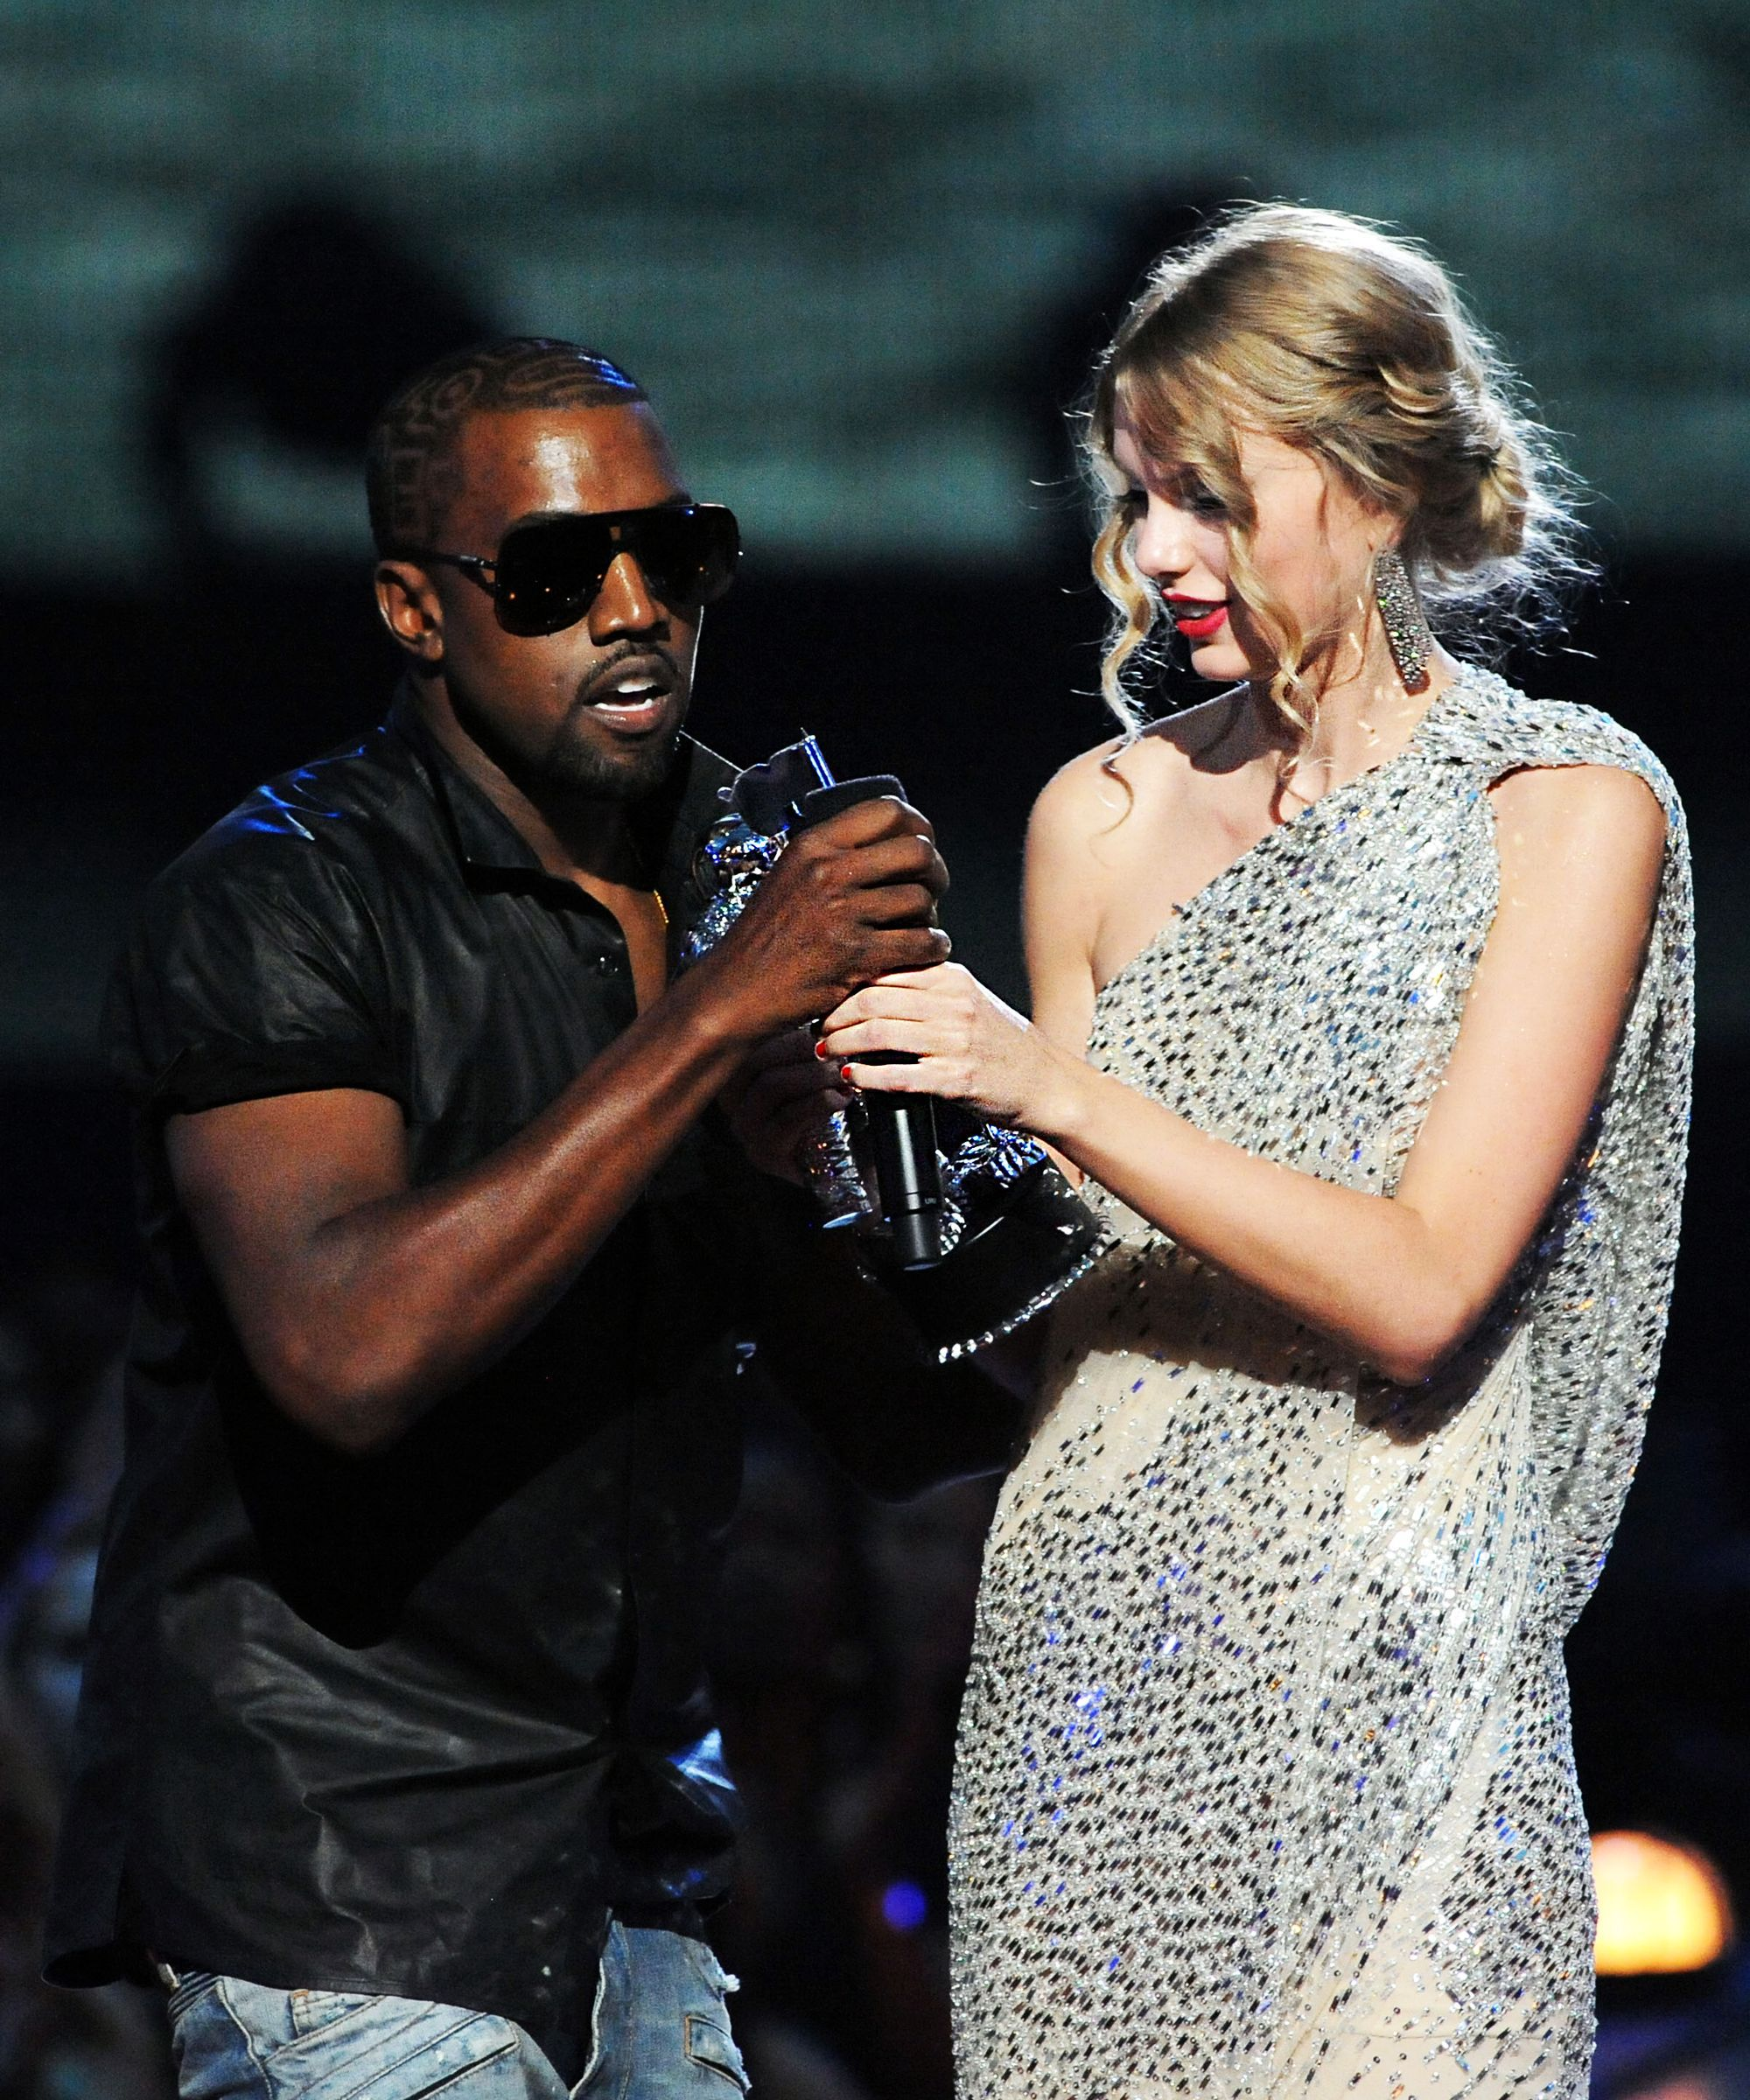 Kanye West S Super Meta Rant About Taylor Swift Fame Taylor Swift New Song Kanye West Mtv Videos